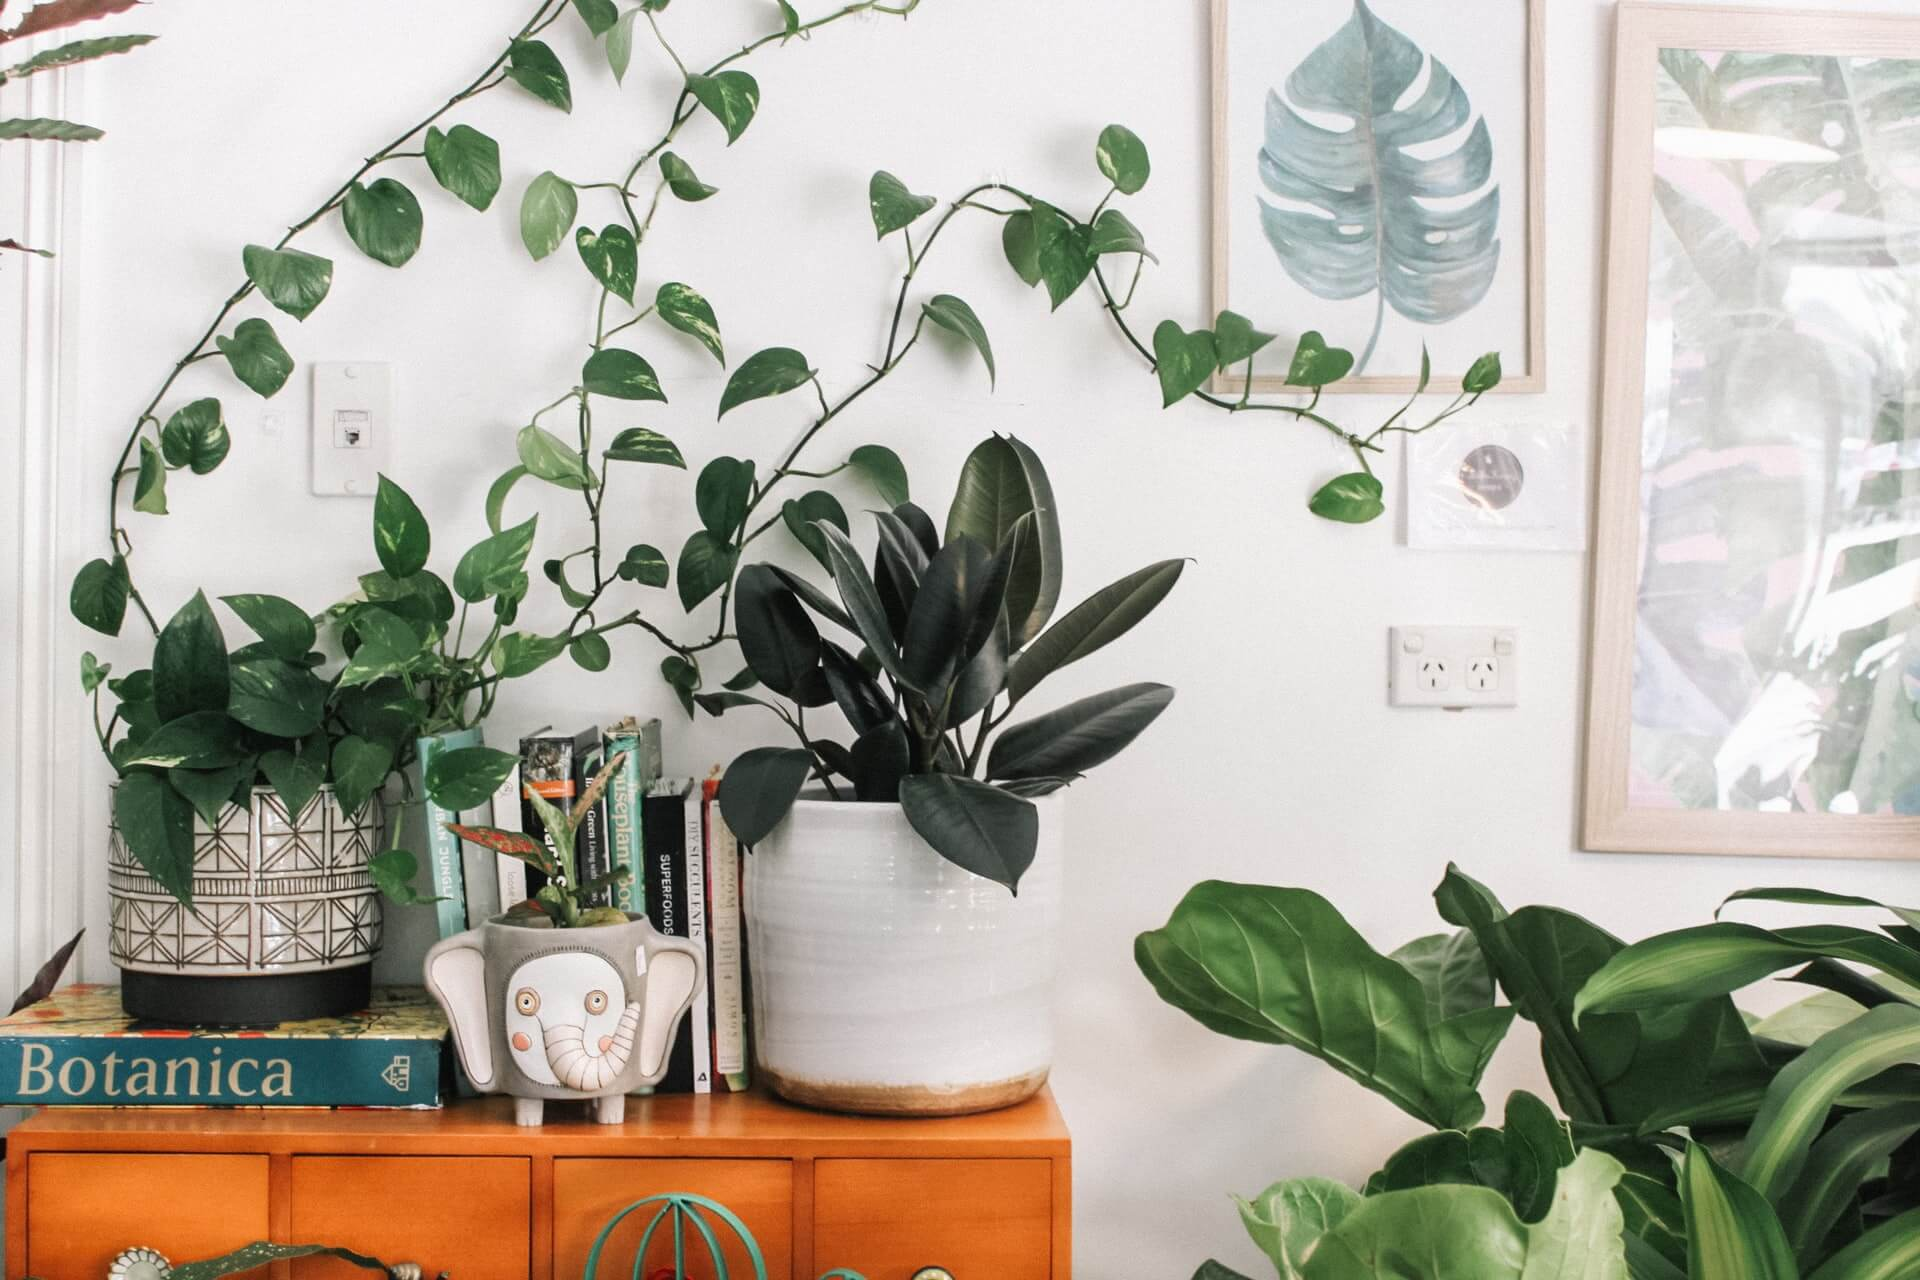 plants on drawers and paintings of plants